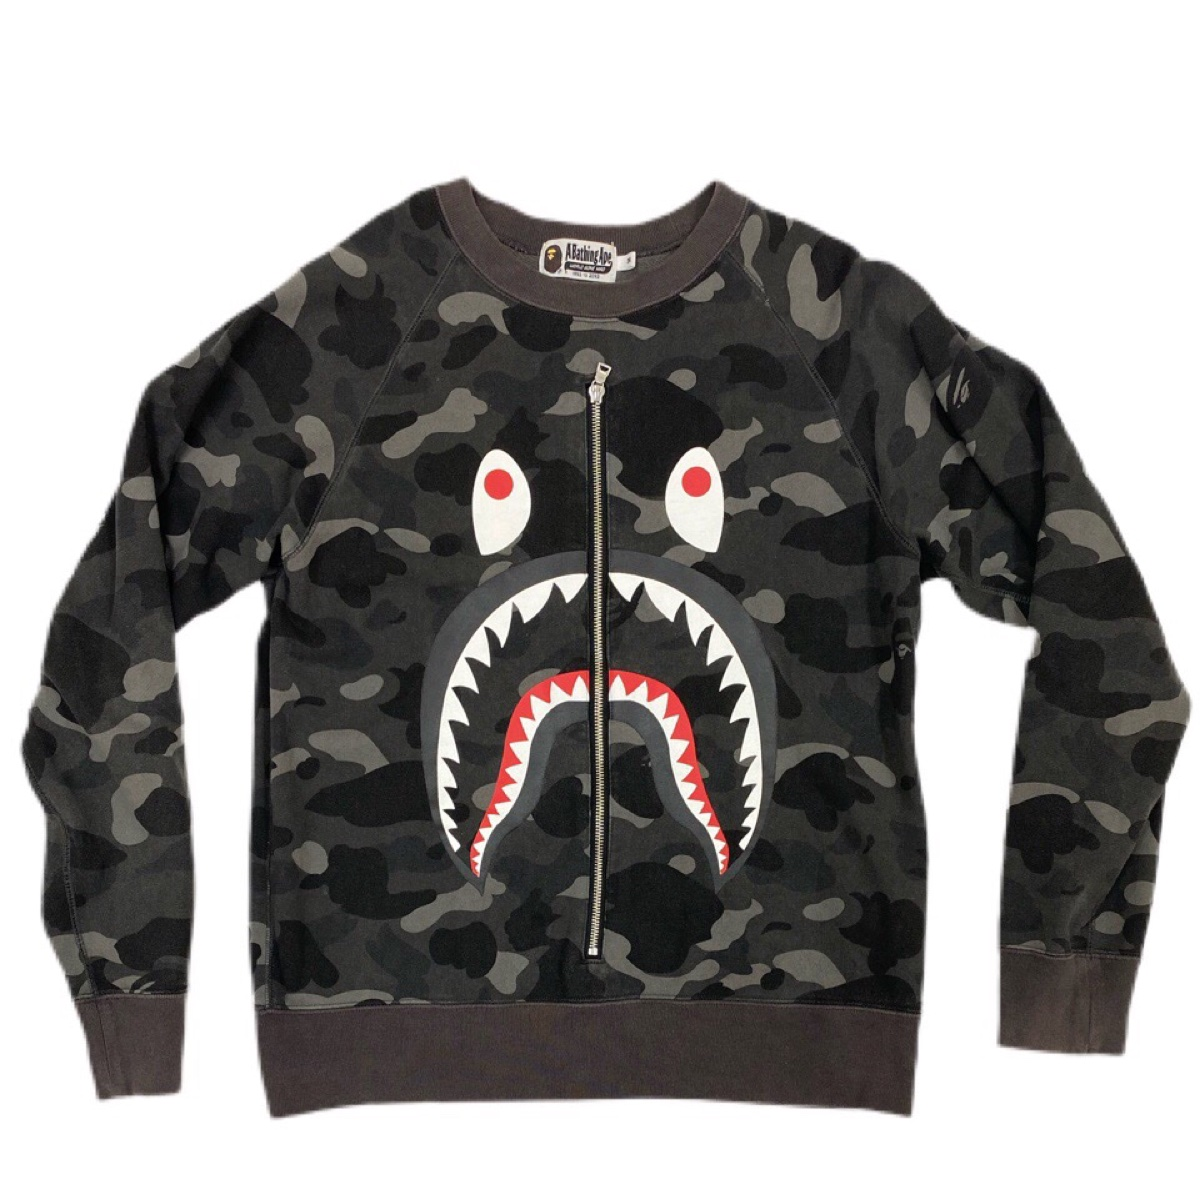 Bape Black Camo Shark Jumper